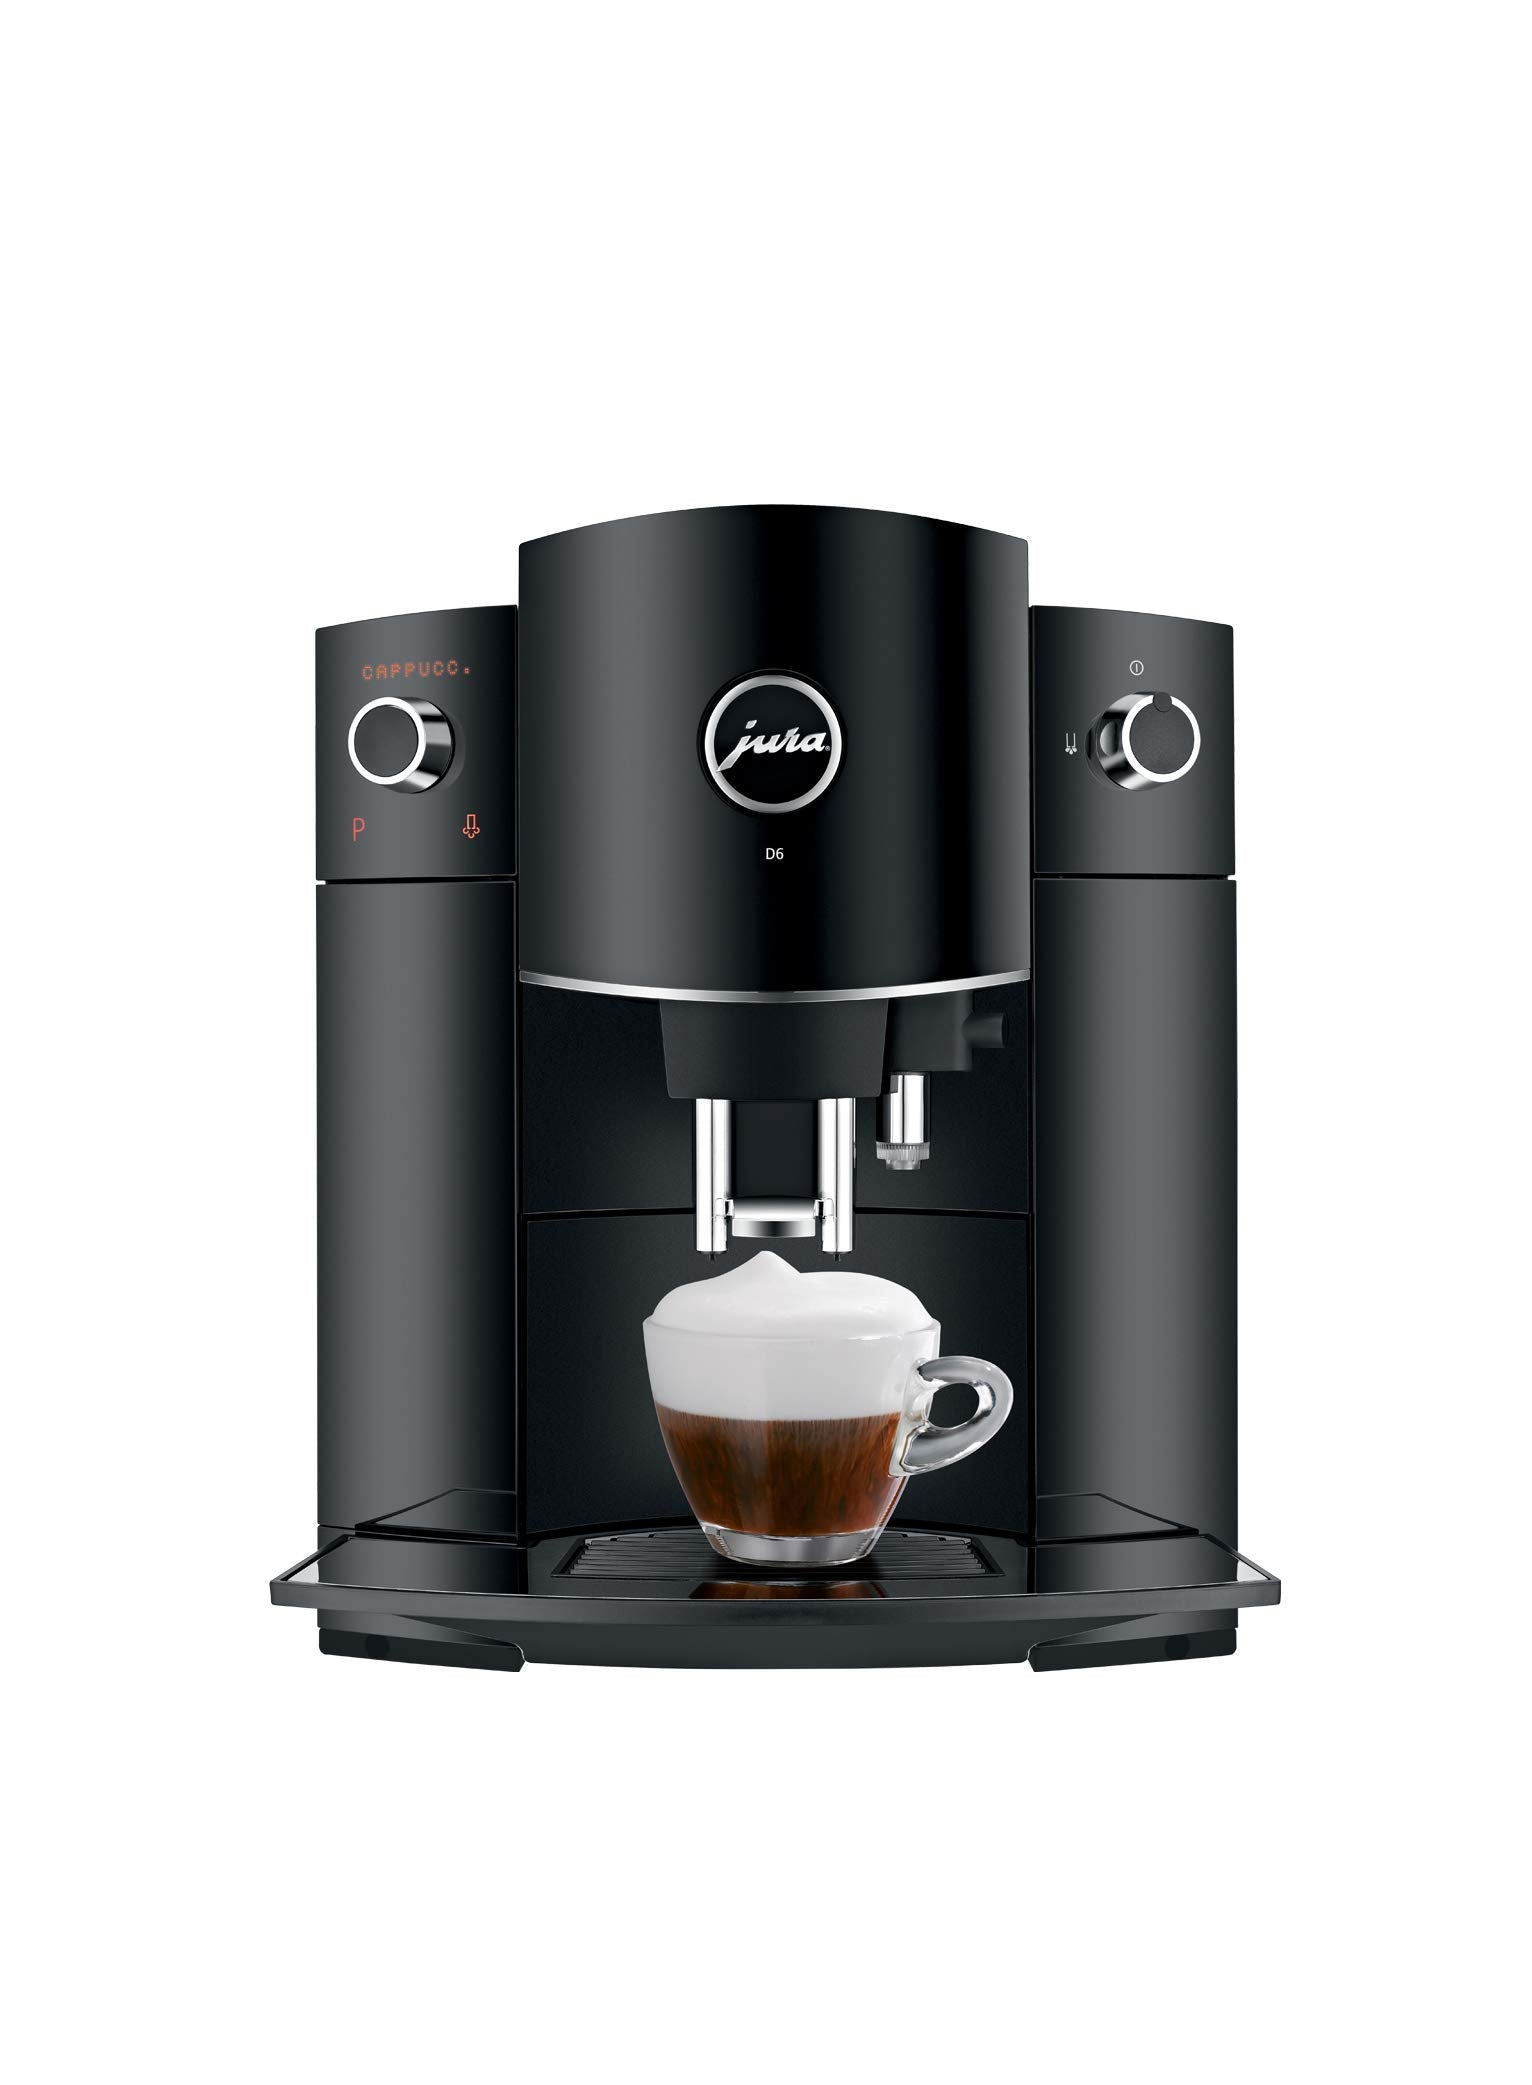 Jura 15215 D6 Automatic Coffee Machine Piano Black, 1 (Renewed)